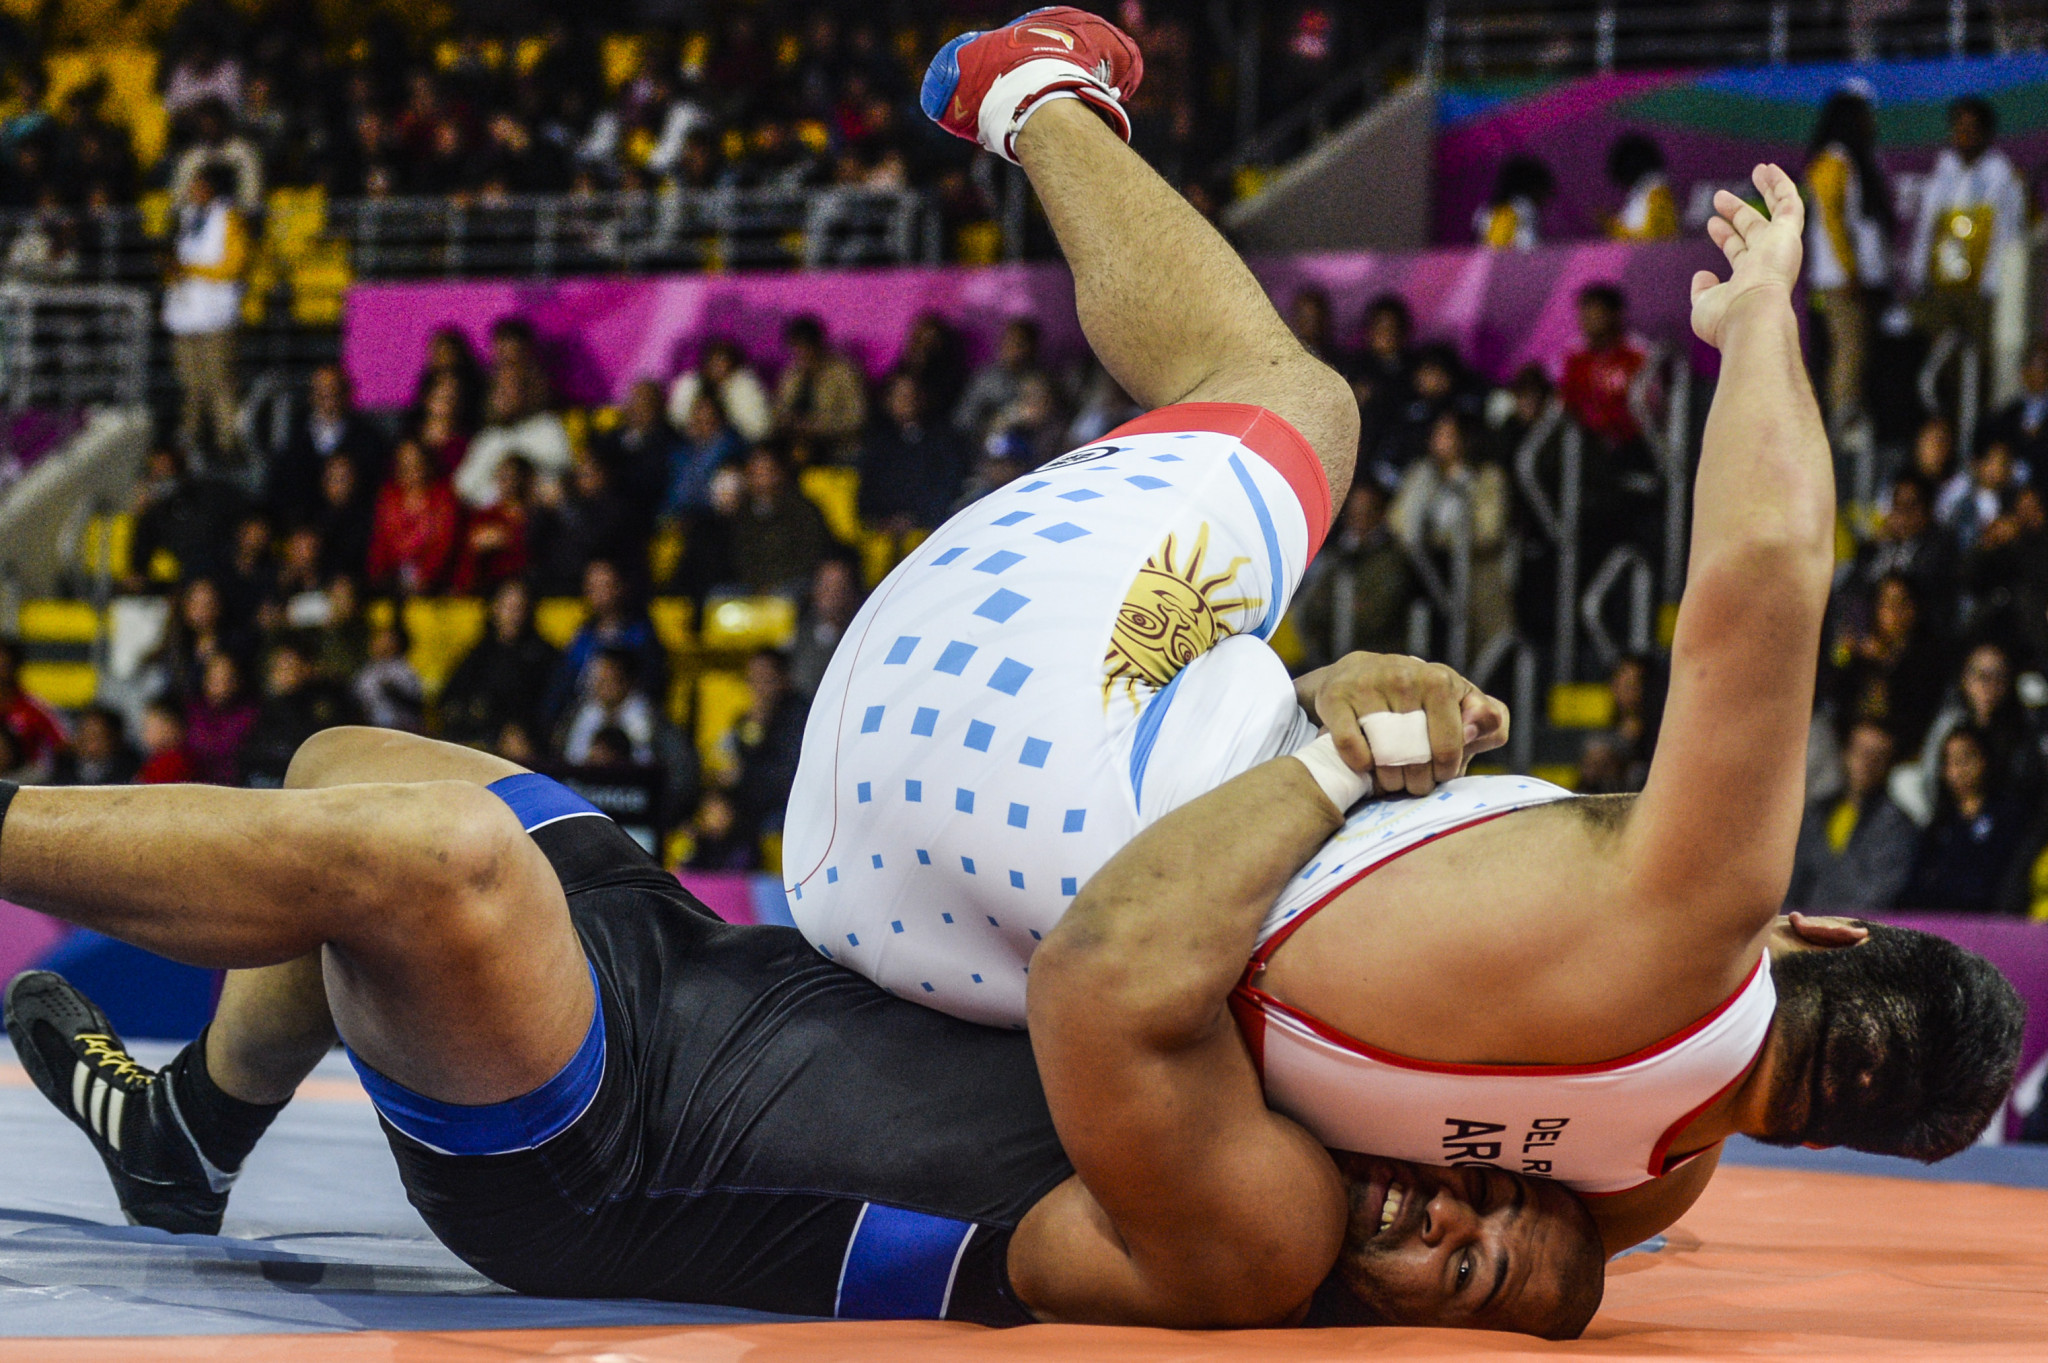 Pan American Wrestling Championships moved from Rio to Guatemala City